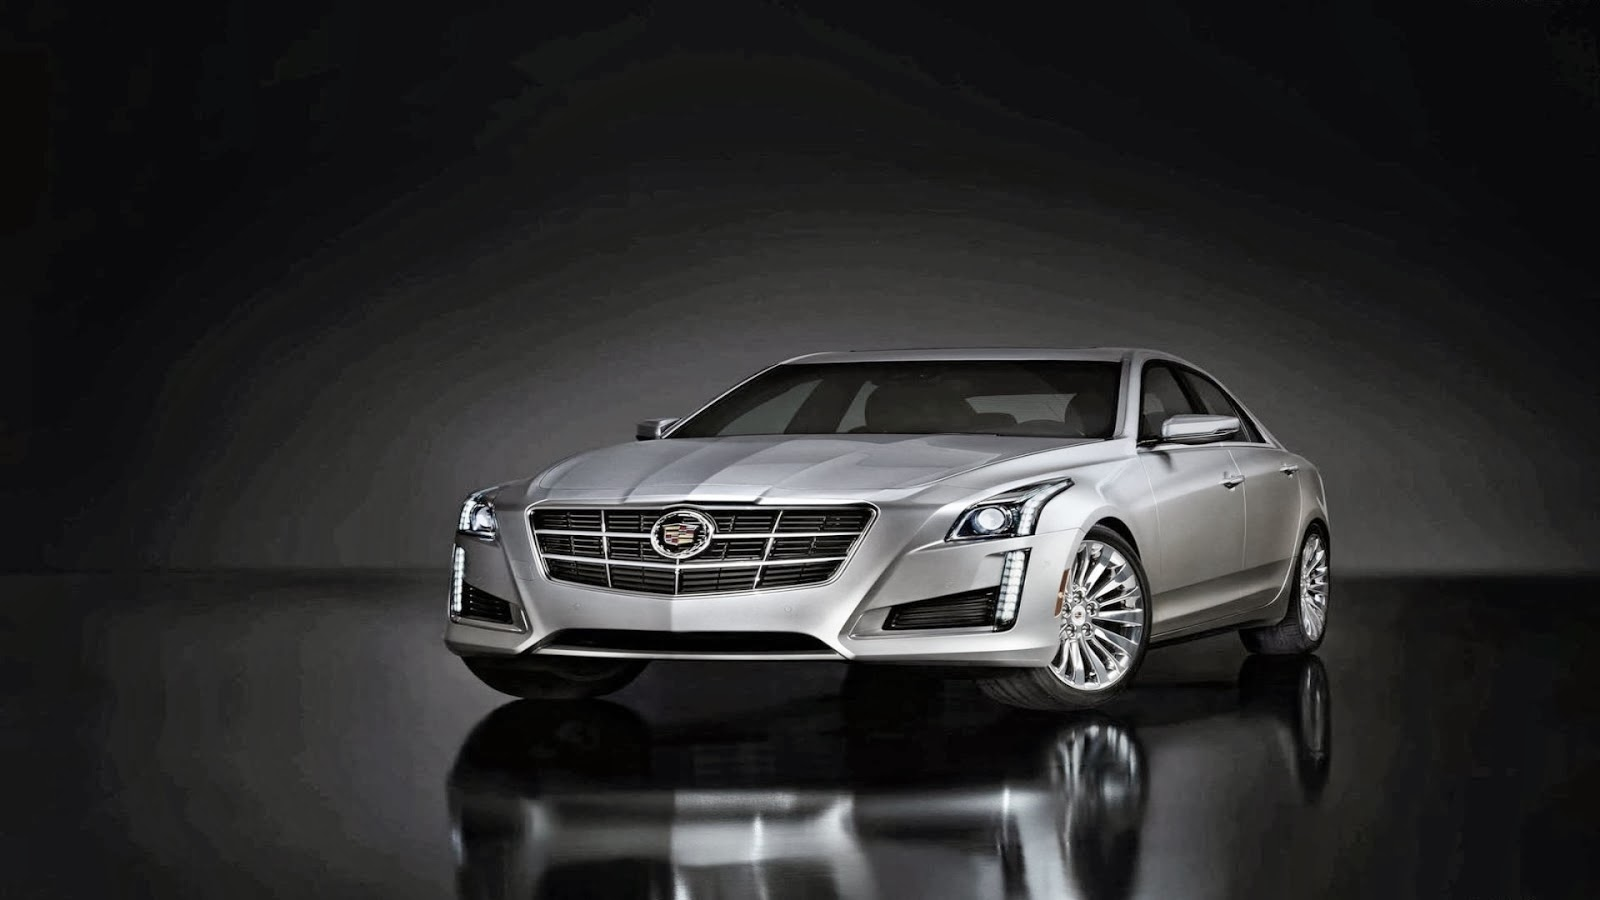 All hot informations download cadillac cts cars hd wallpapers 1080p - Car hd wallpapers 1080p download ...